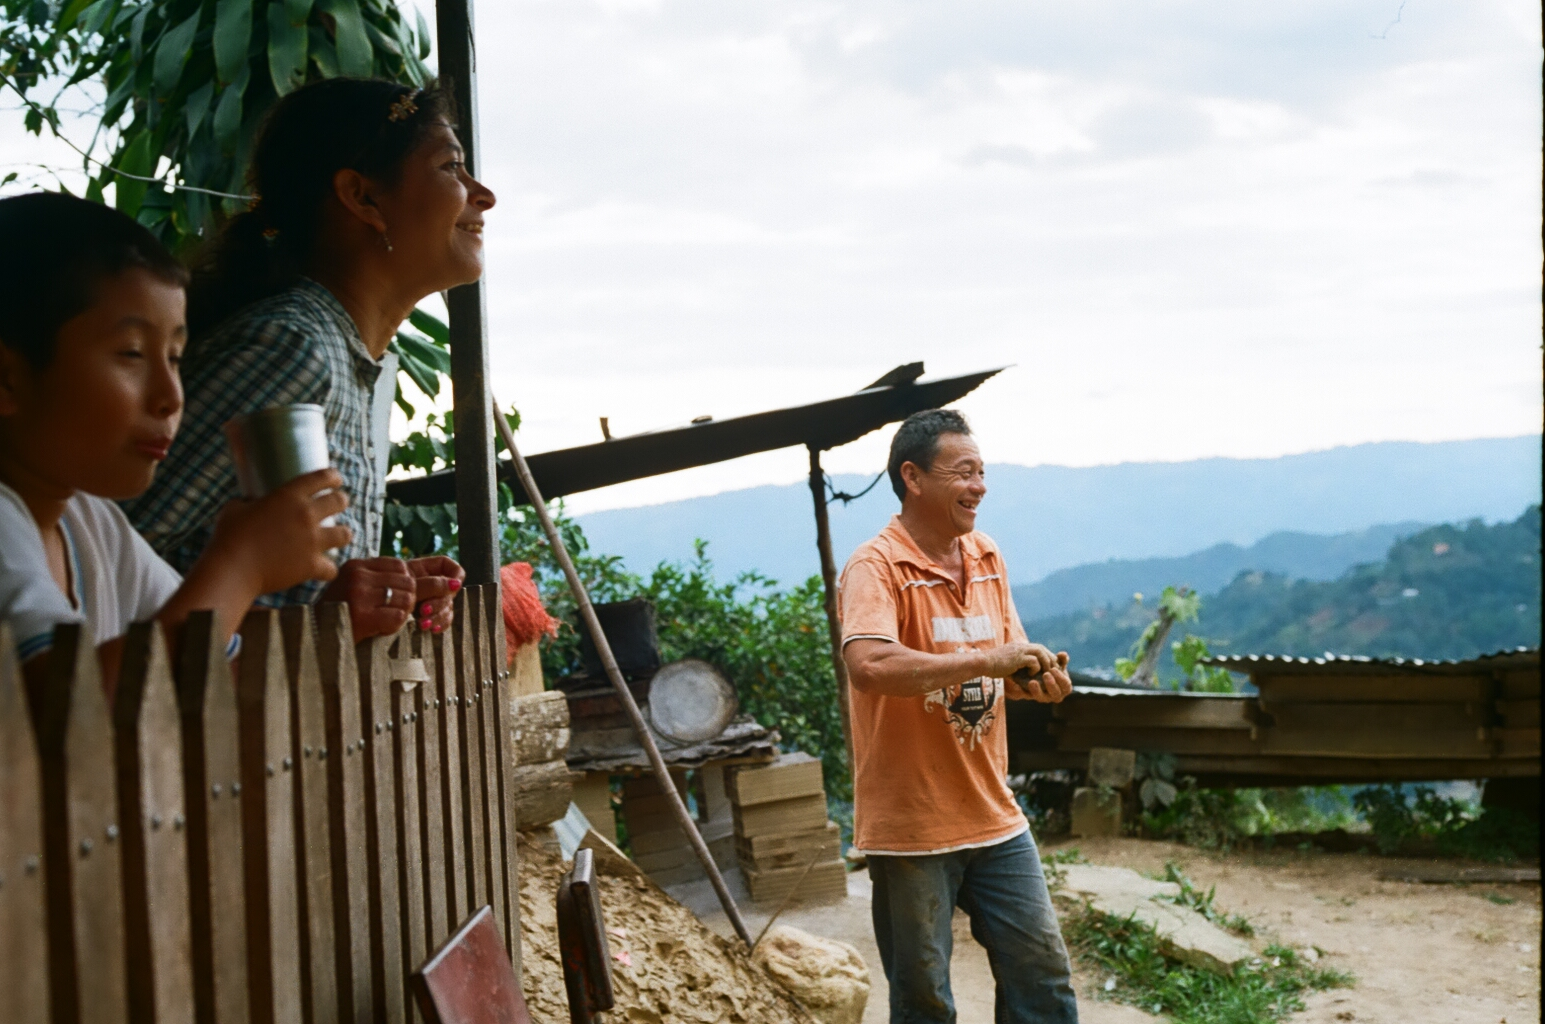 Playing TEJO, a Colombian traditional sport, and favorite pastime among farmers and their families.